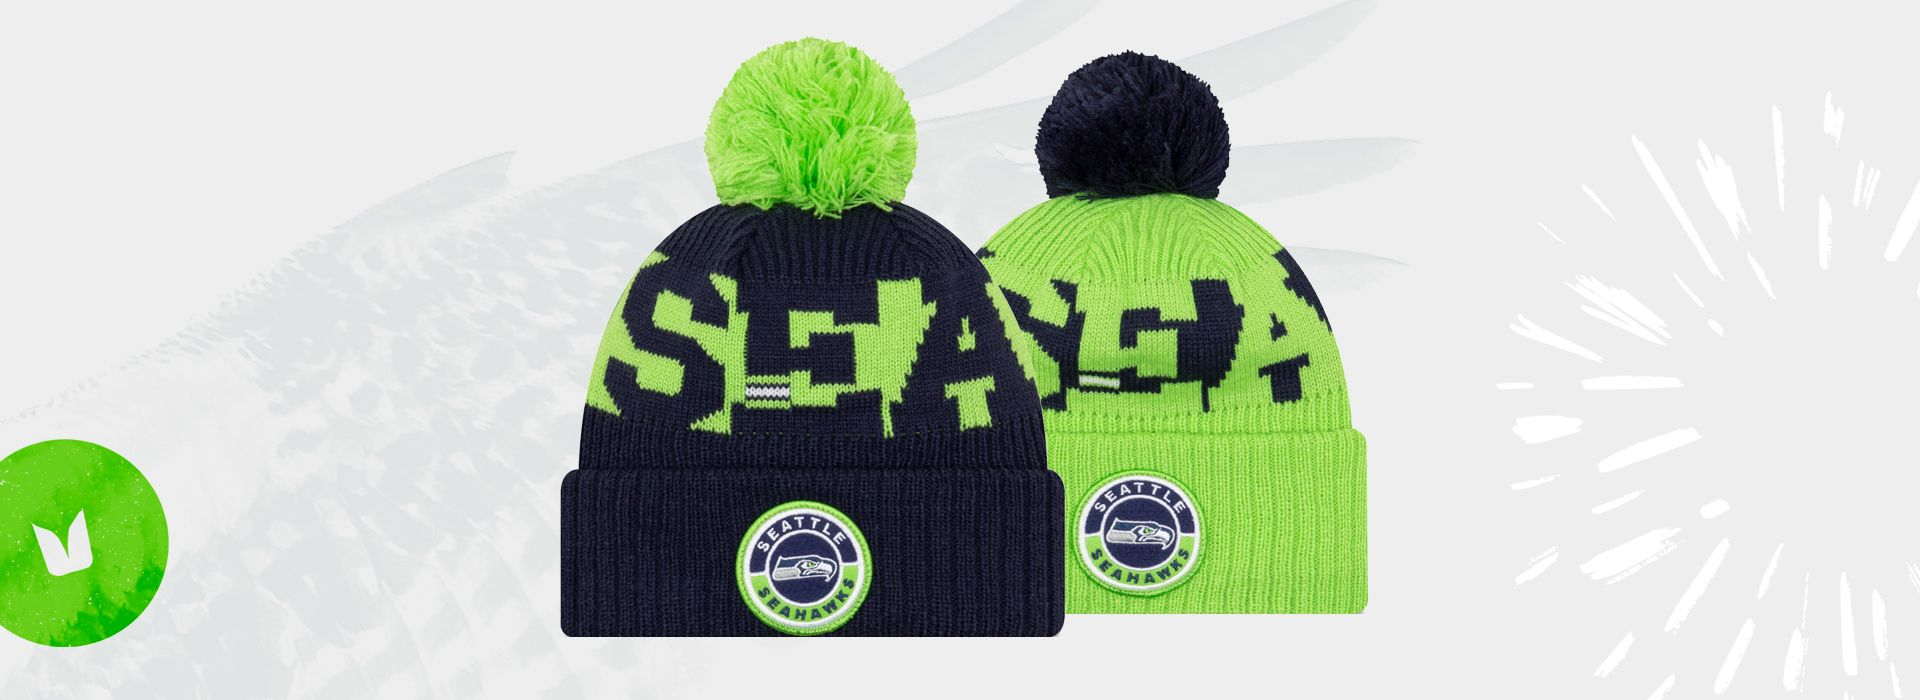 Pro Shop Knit Hats